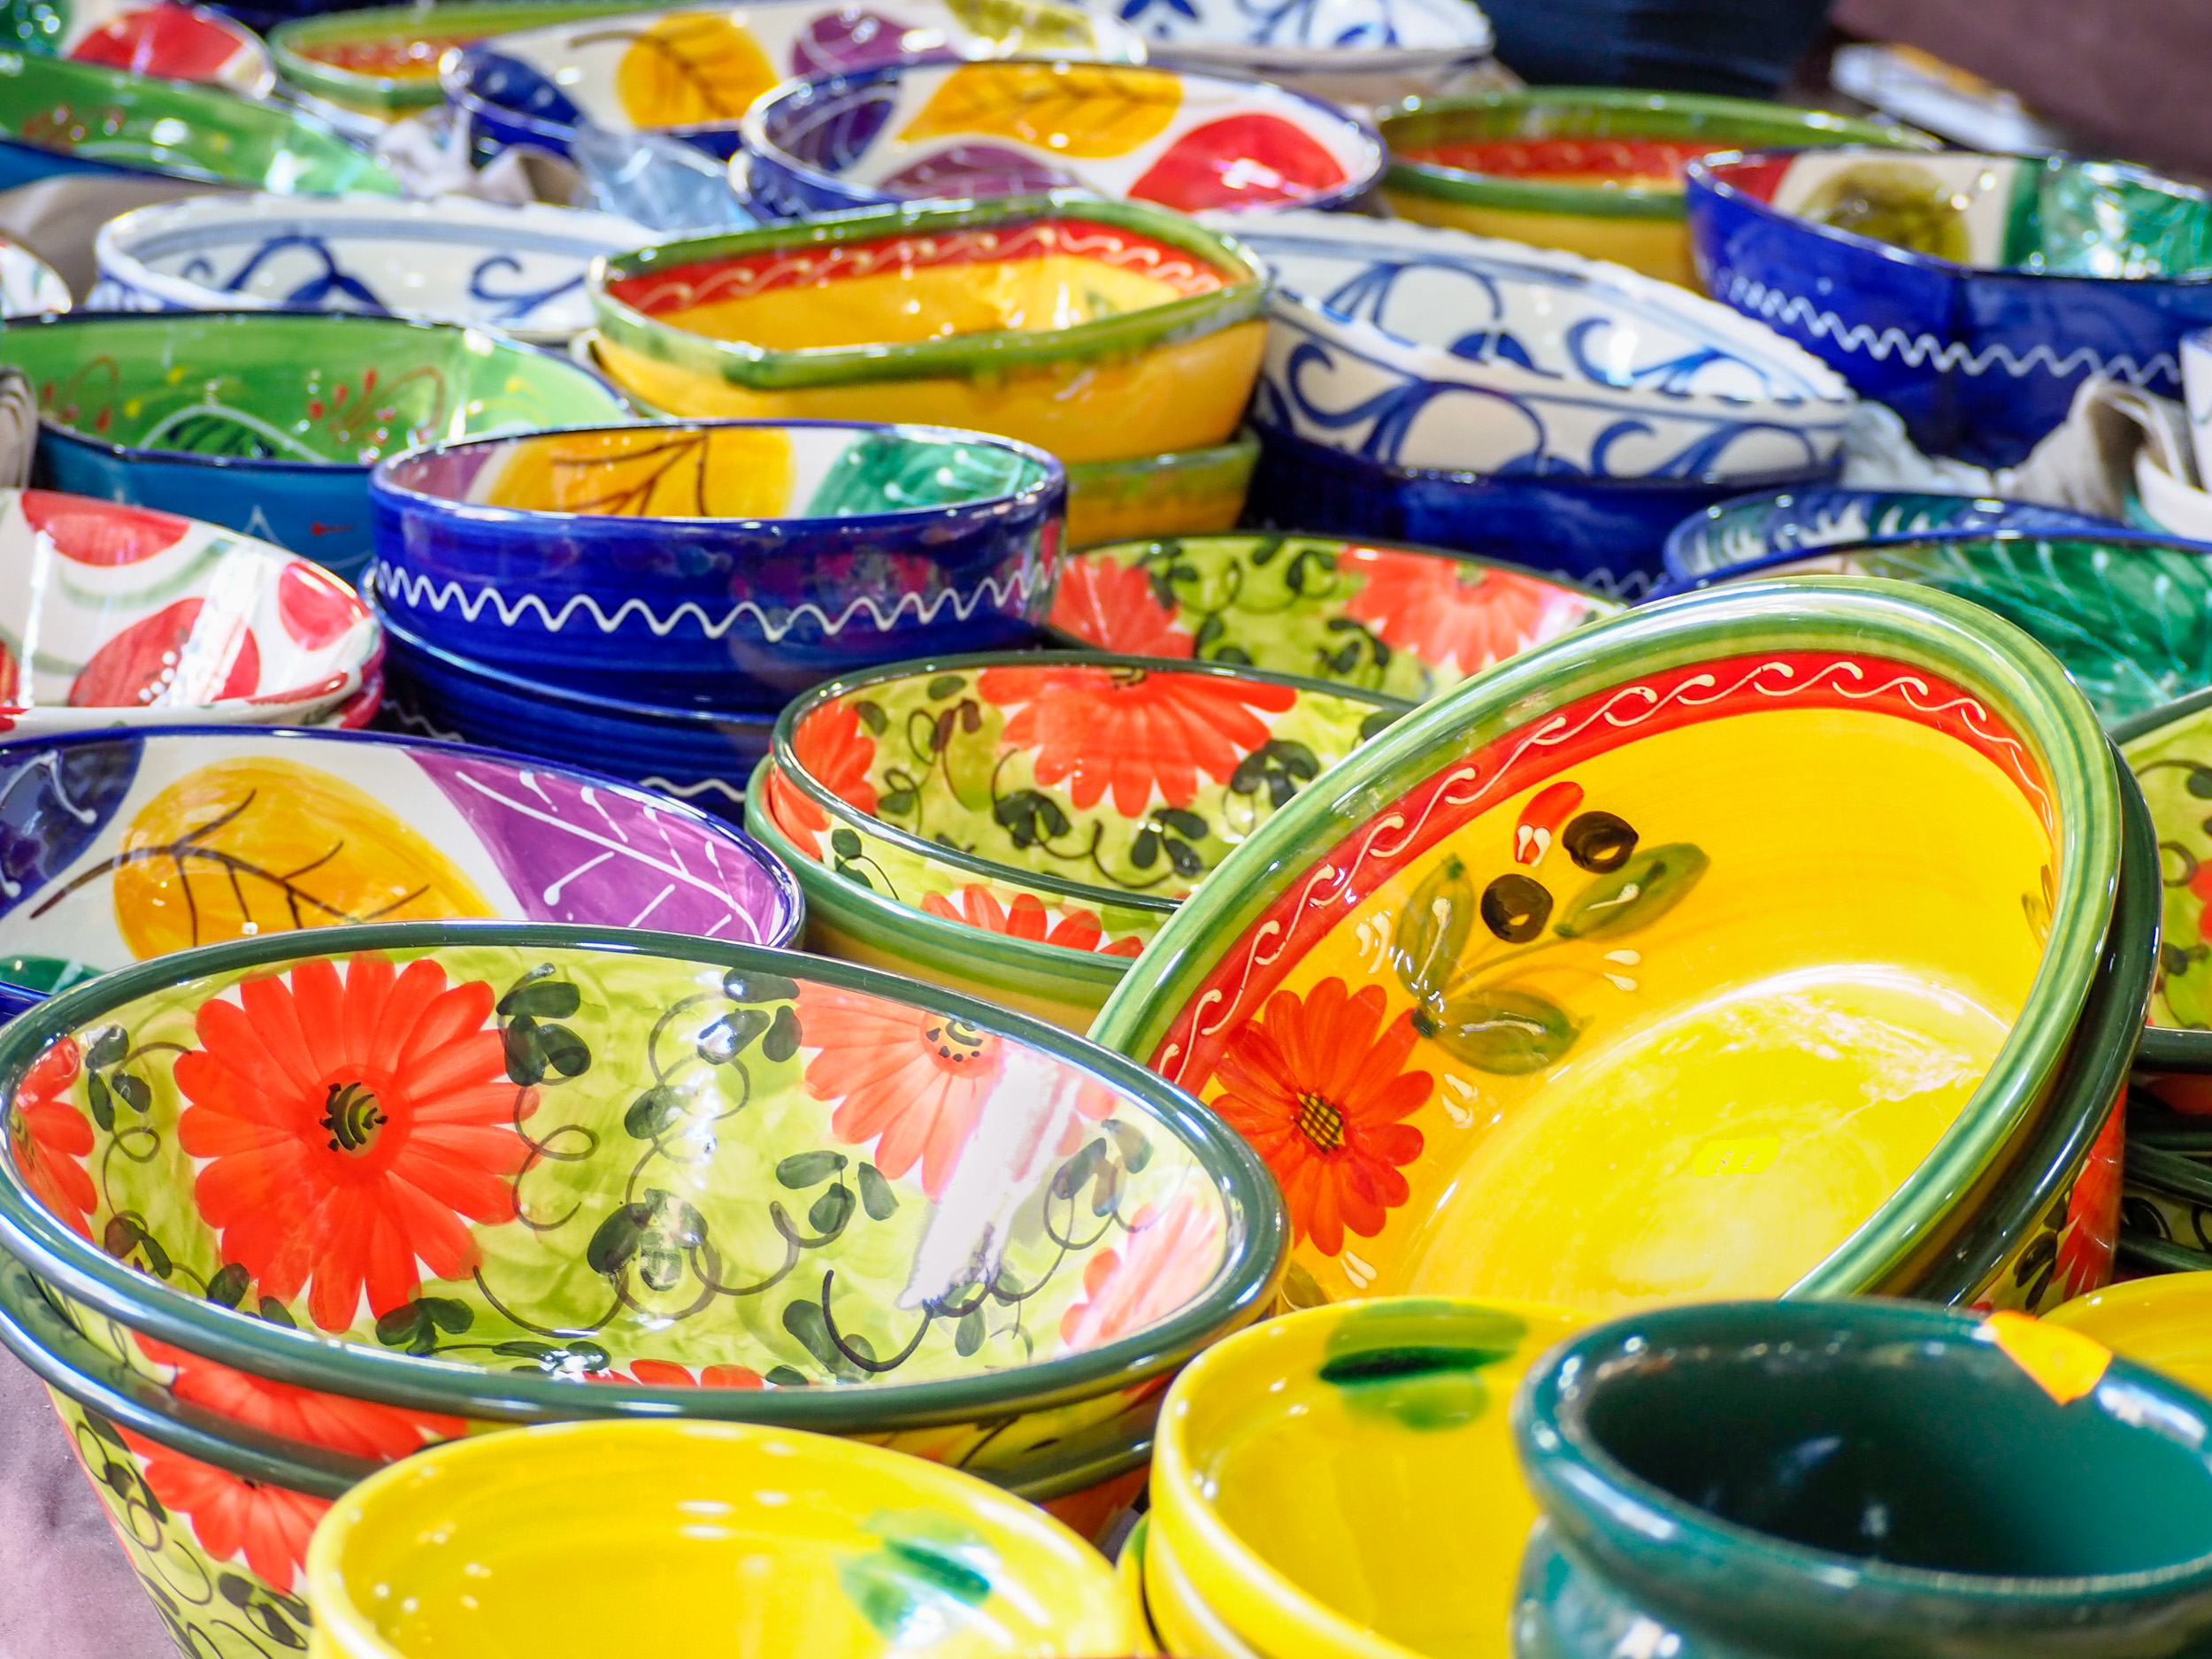 ColouredSpanishCrockery-8170584.jpg